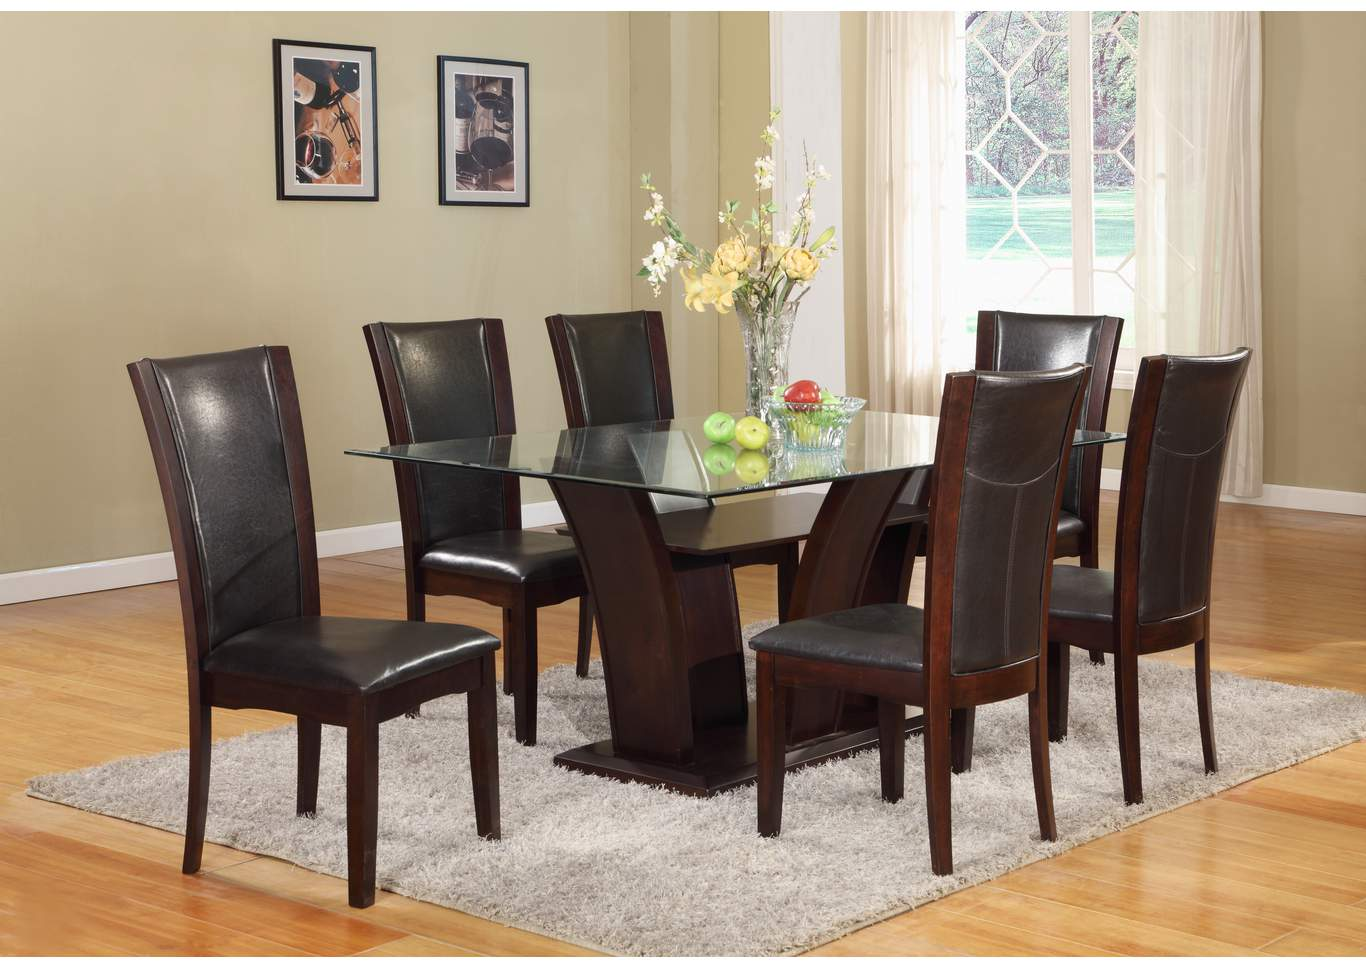 affordable furniture houston camelia espresso glass rectangular dining room table w 6 camelia. Black Bedroom Furniture Sets. Home Design Ideas